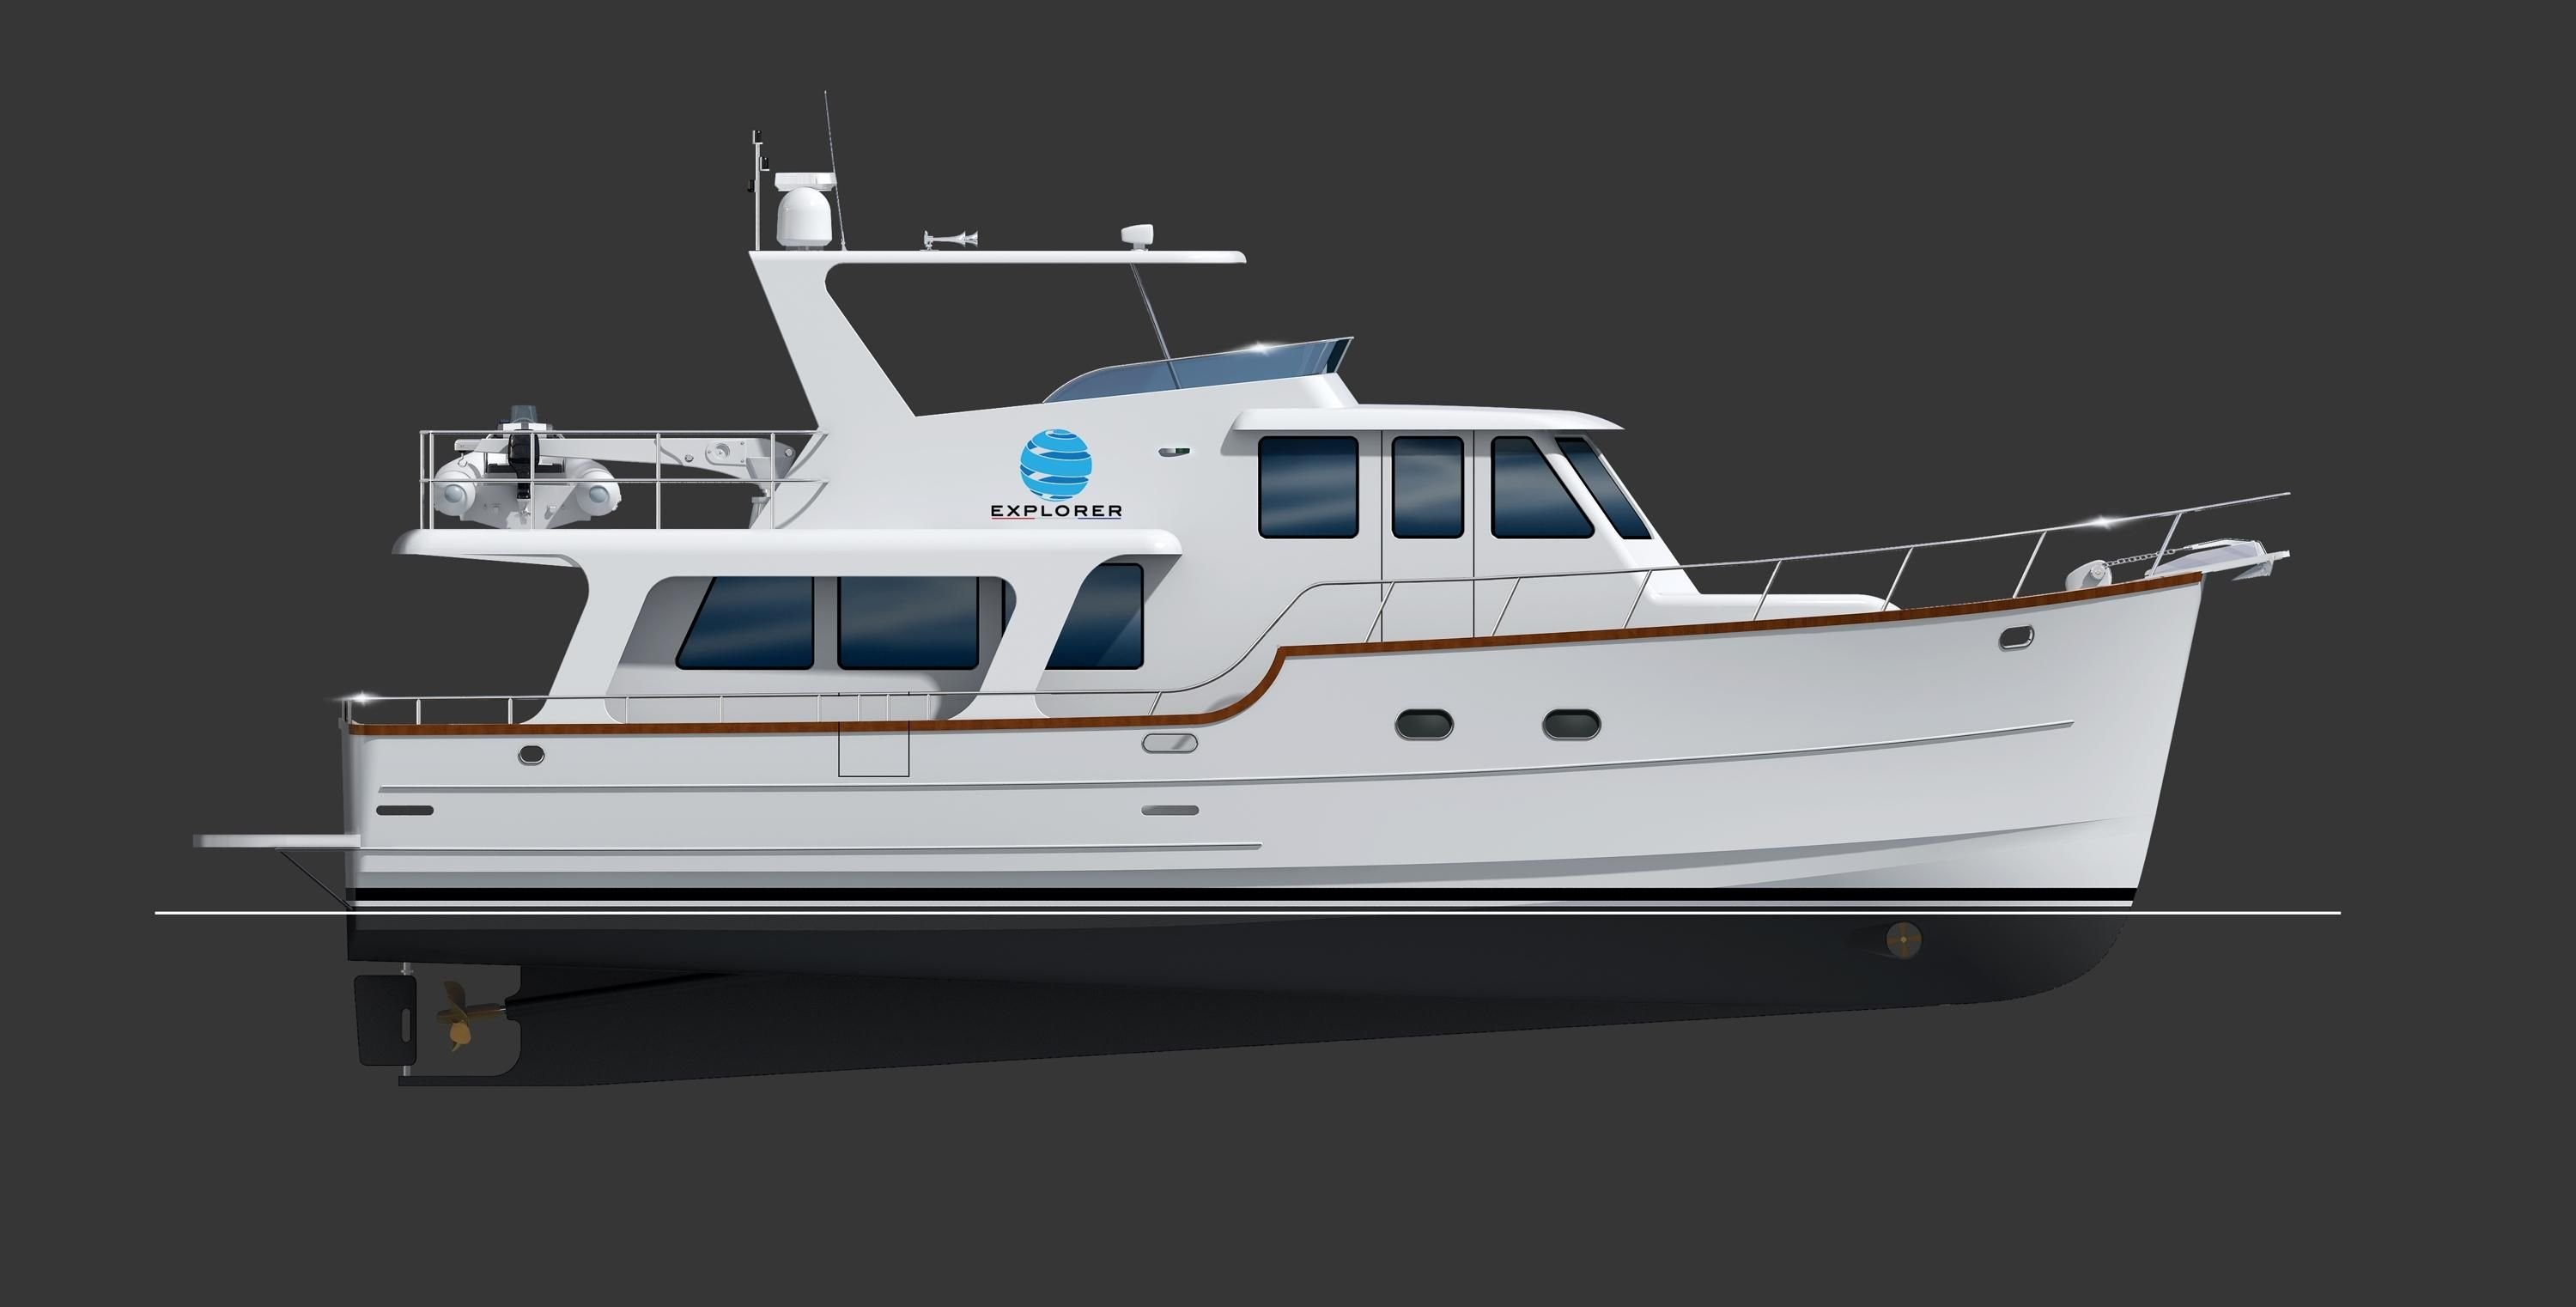 2018 explorer motor yacht pilothouse motor yacht power for Large motor yachts for sale